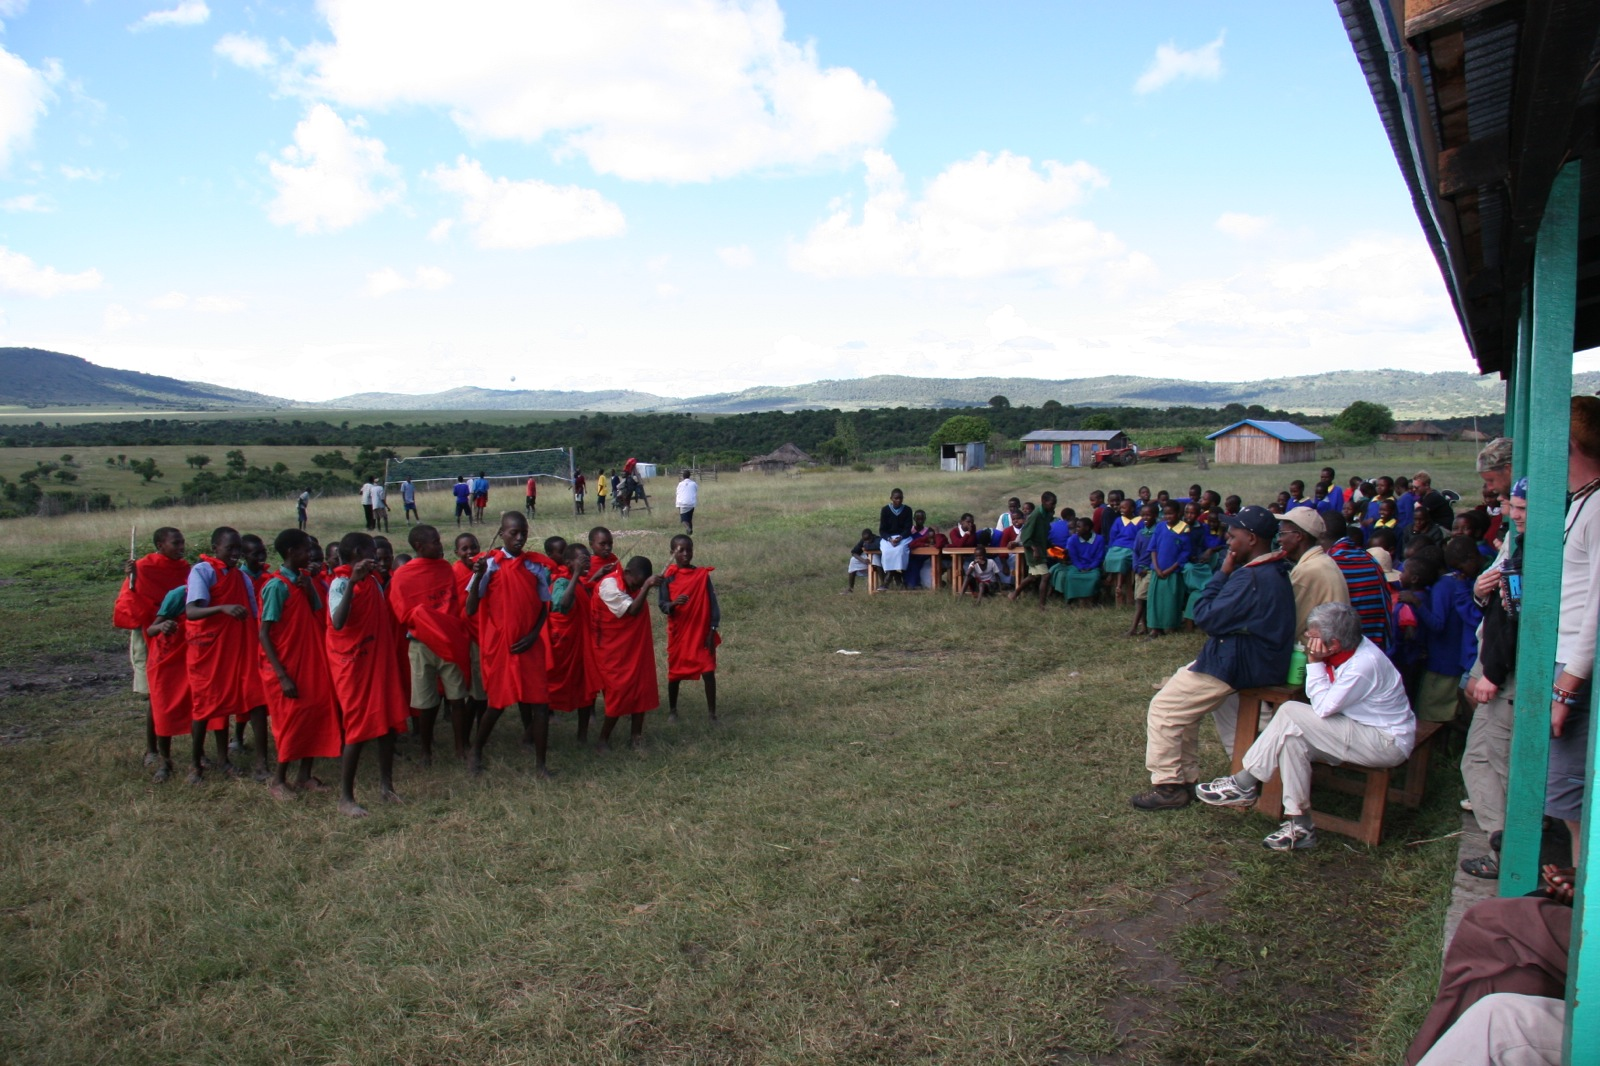 A group of Kenyan youth dressed in bright red cloths - the Naaroposa Primary School Choir - sings to American visitors who look on from under the overhang of a building.